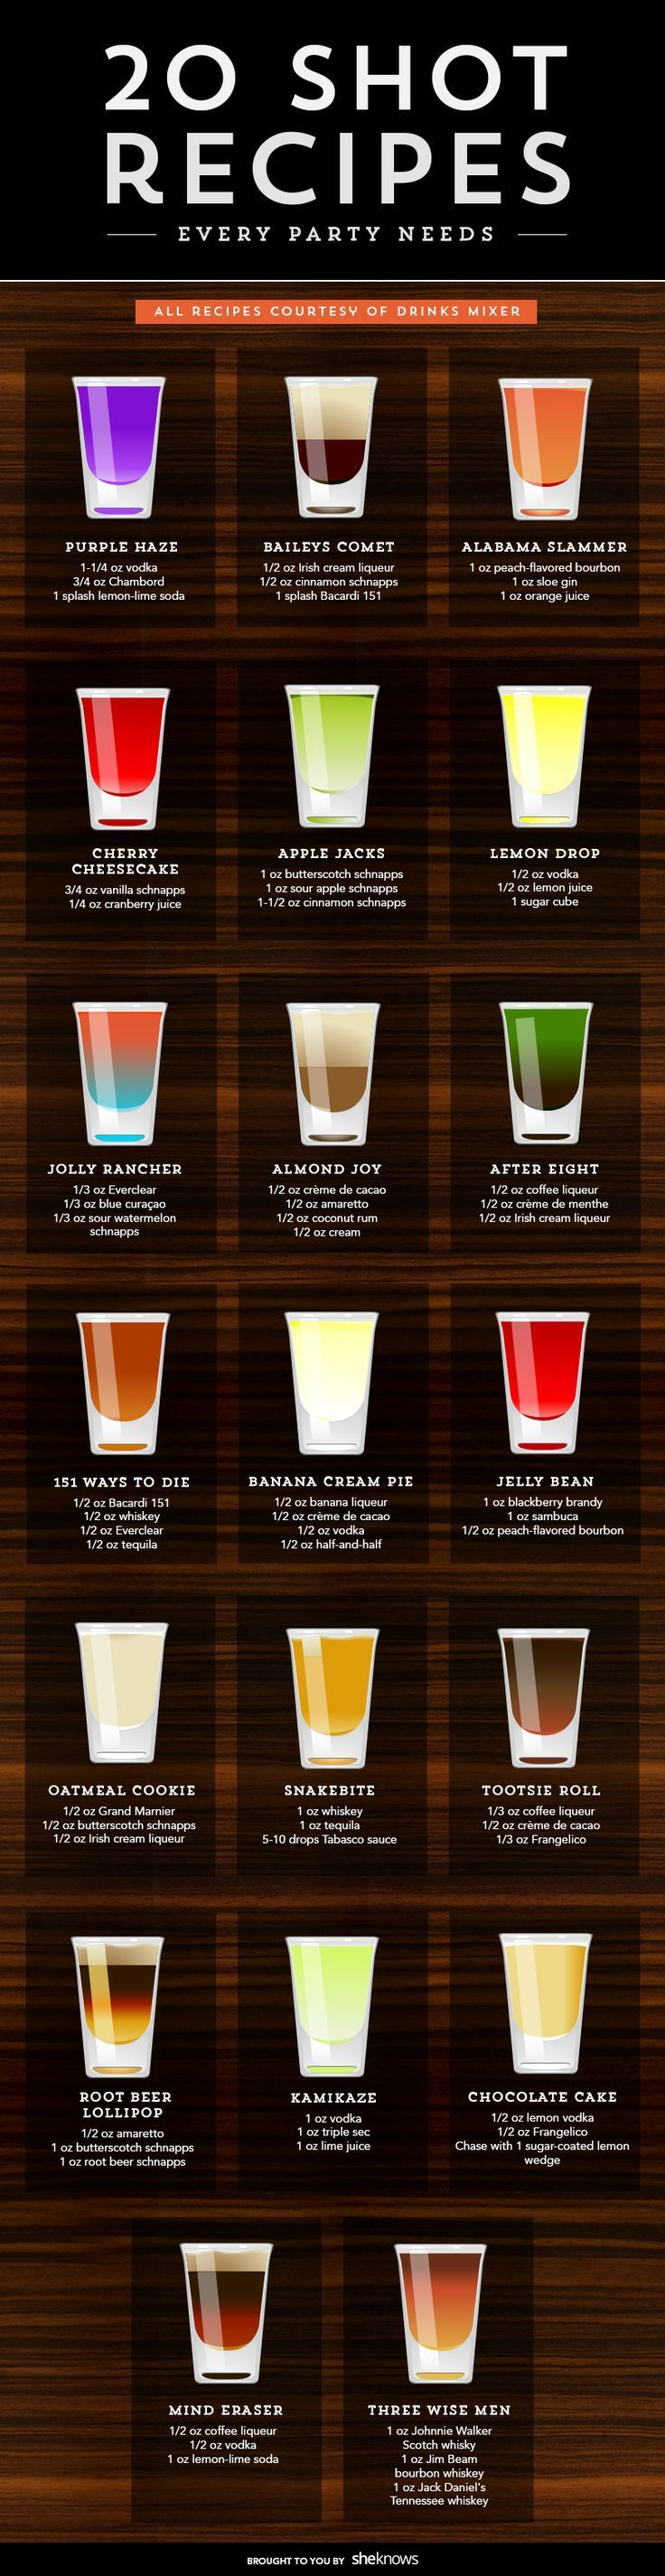 Even if you don't party anymore, these shot recipes are worth trying